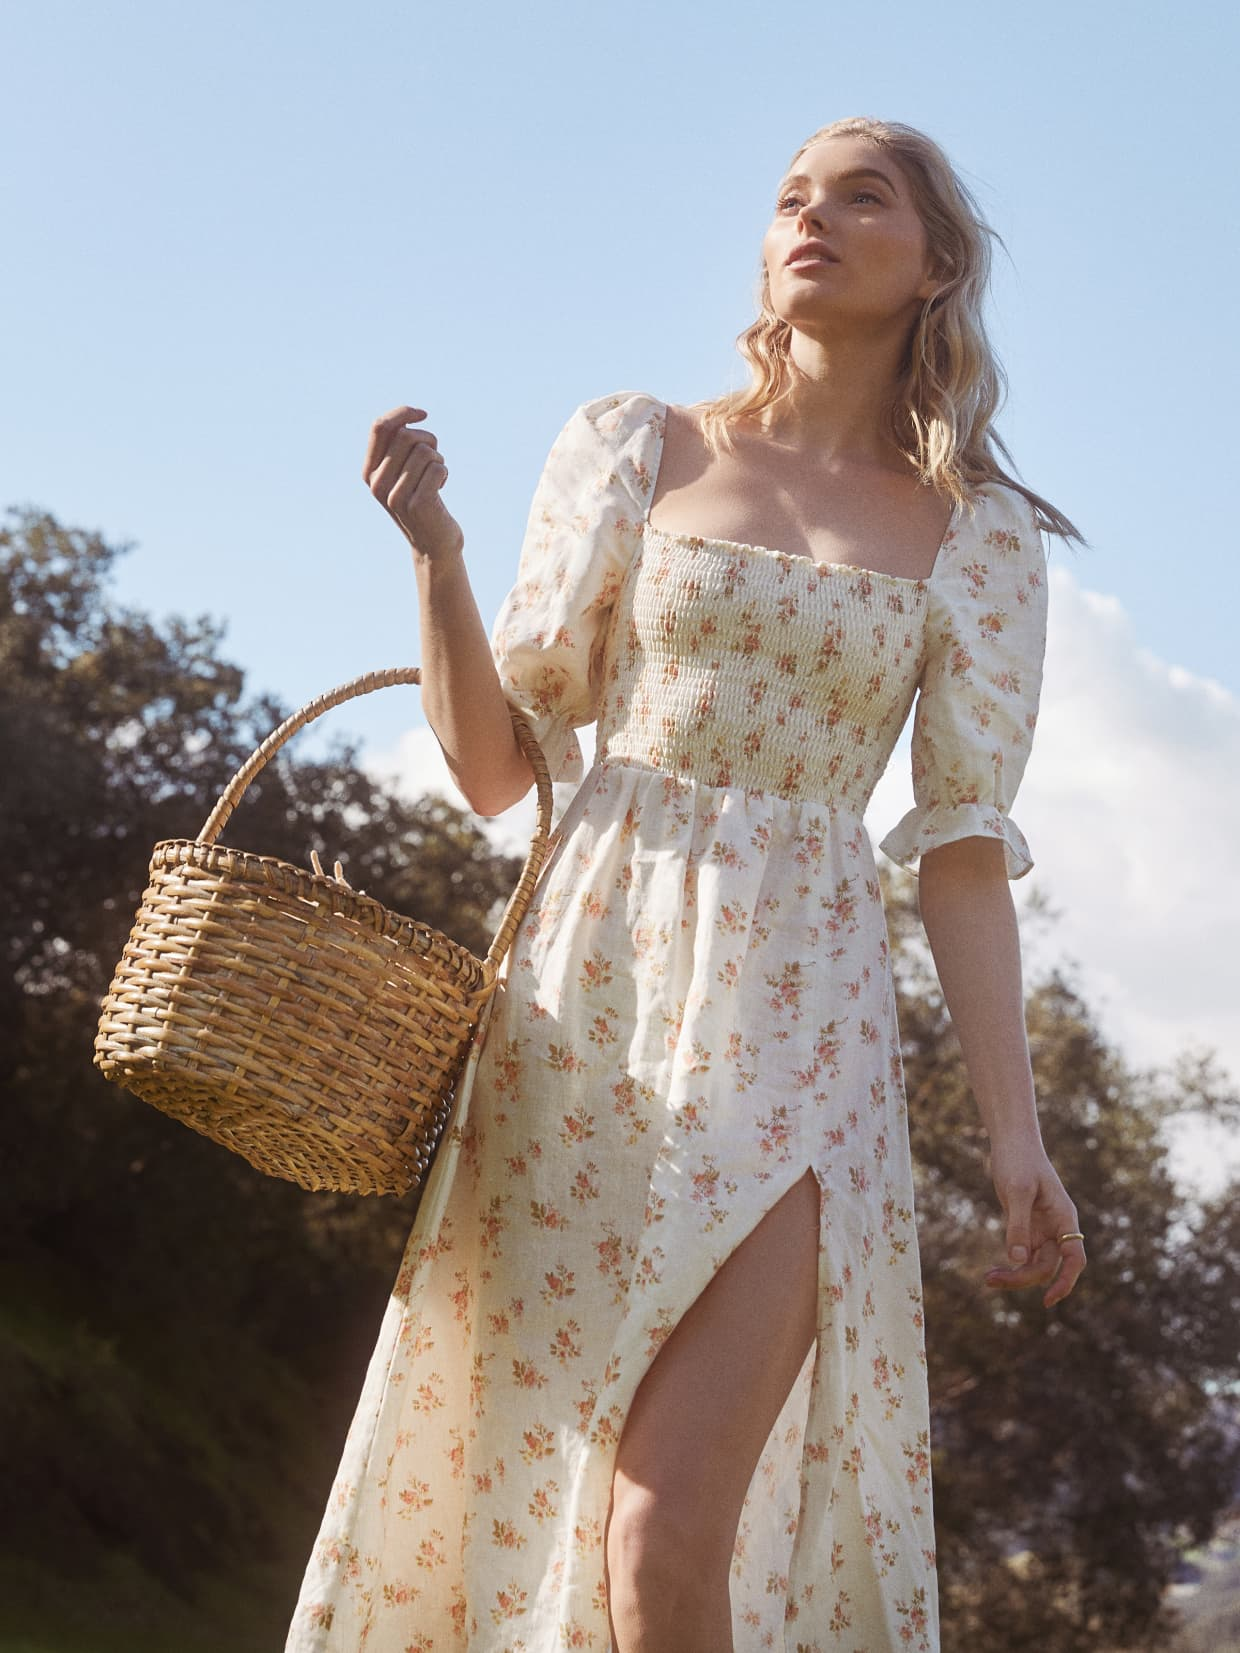 Reformation - Marabella DressThe ultimate fairytale dress, the Marabella looks comfortable, flattering and so dreamy. The stretchy midsection allows for lots of snacking (ice cream anyone?) and those puffy sleeves and skirt slit would be so nice on a warmer day.